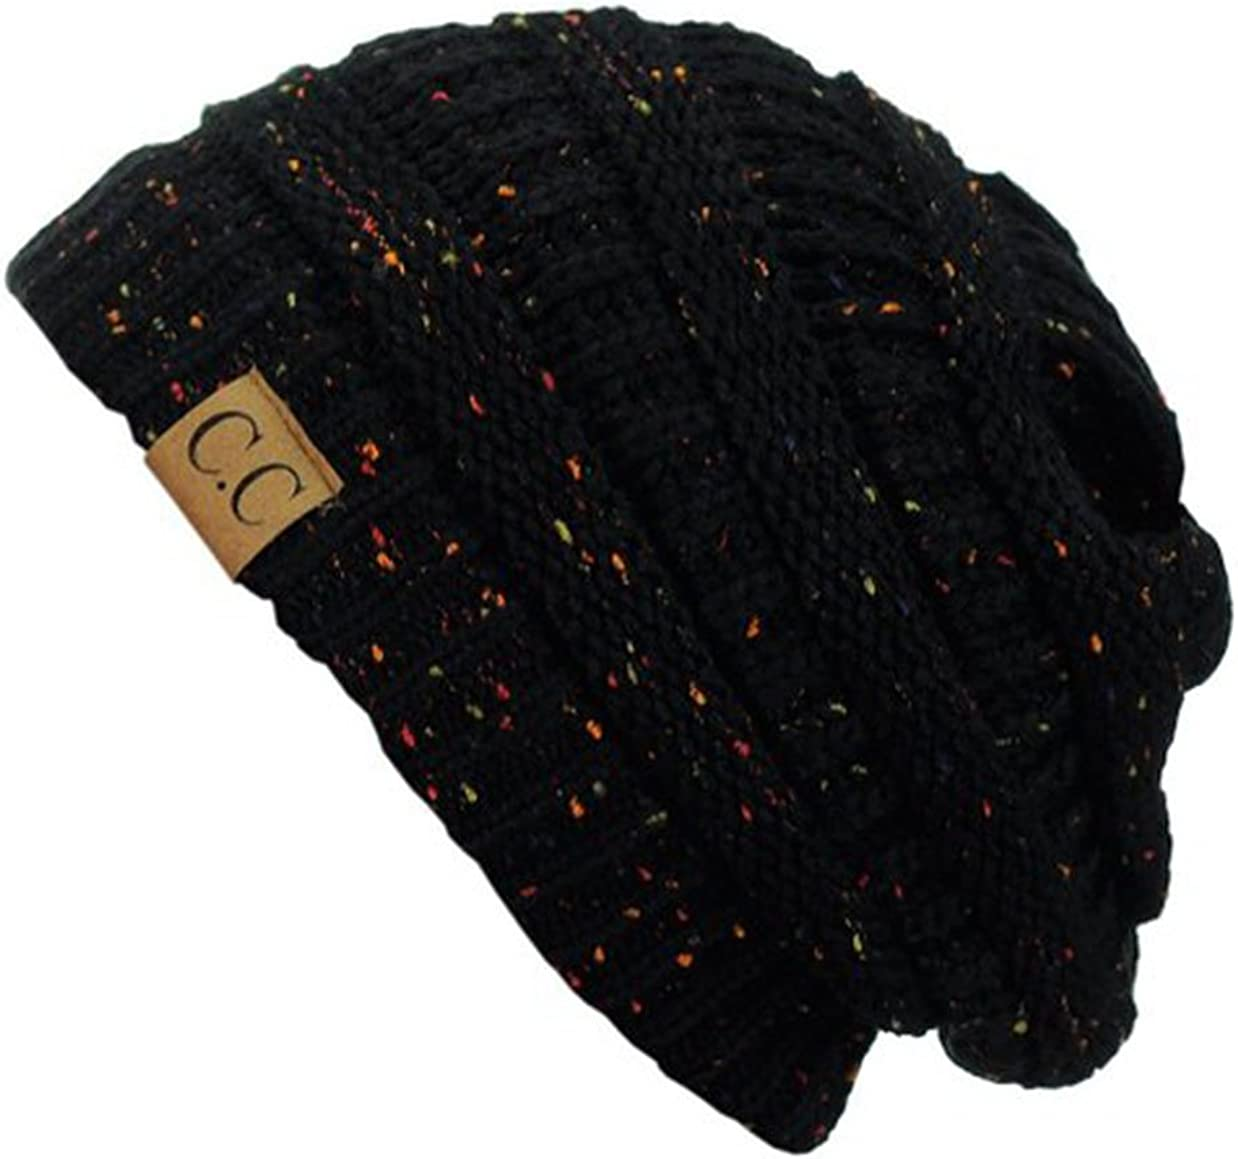 C.C Trendy Warm Chunky Soft Stretch Max 63% OFF Cable Slouchy In a popularity Sk Knit Beanie